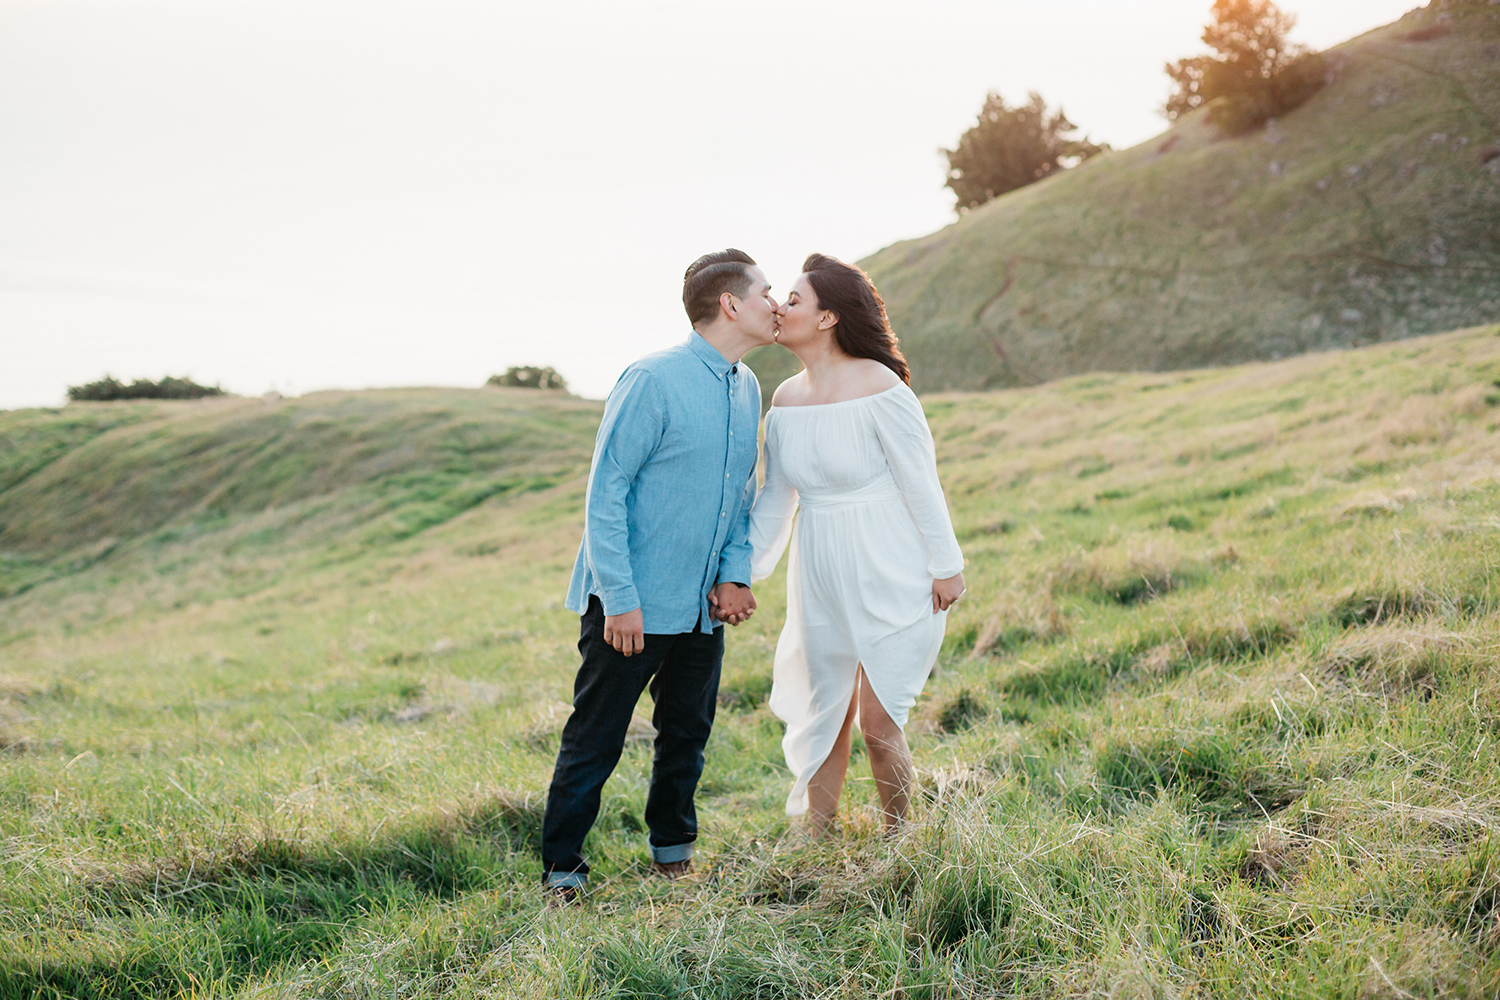 Couple kissing in a grass rolling hill during their engagement session in Mount Tamalpais in Marin, California.